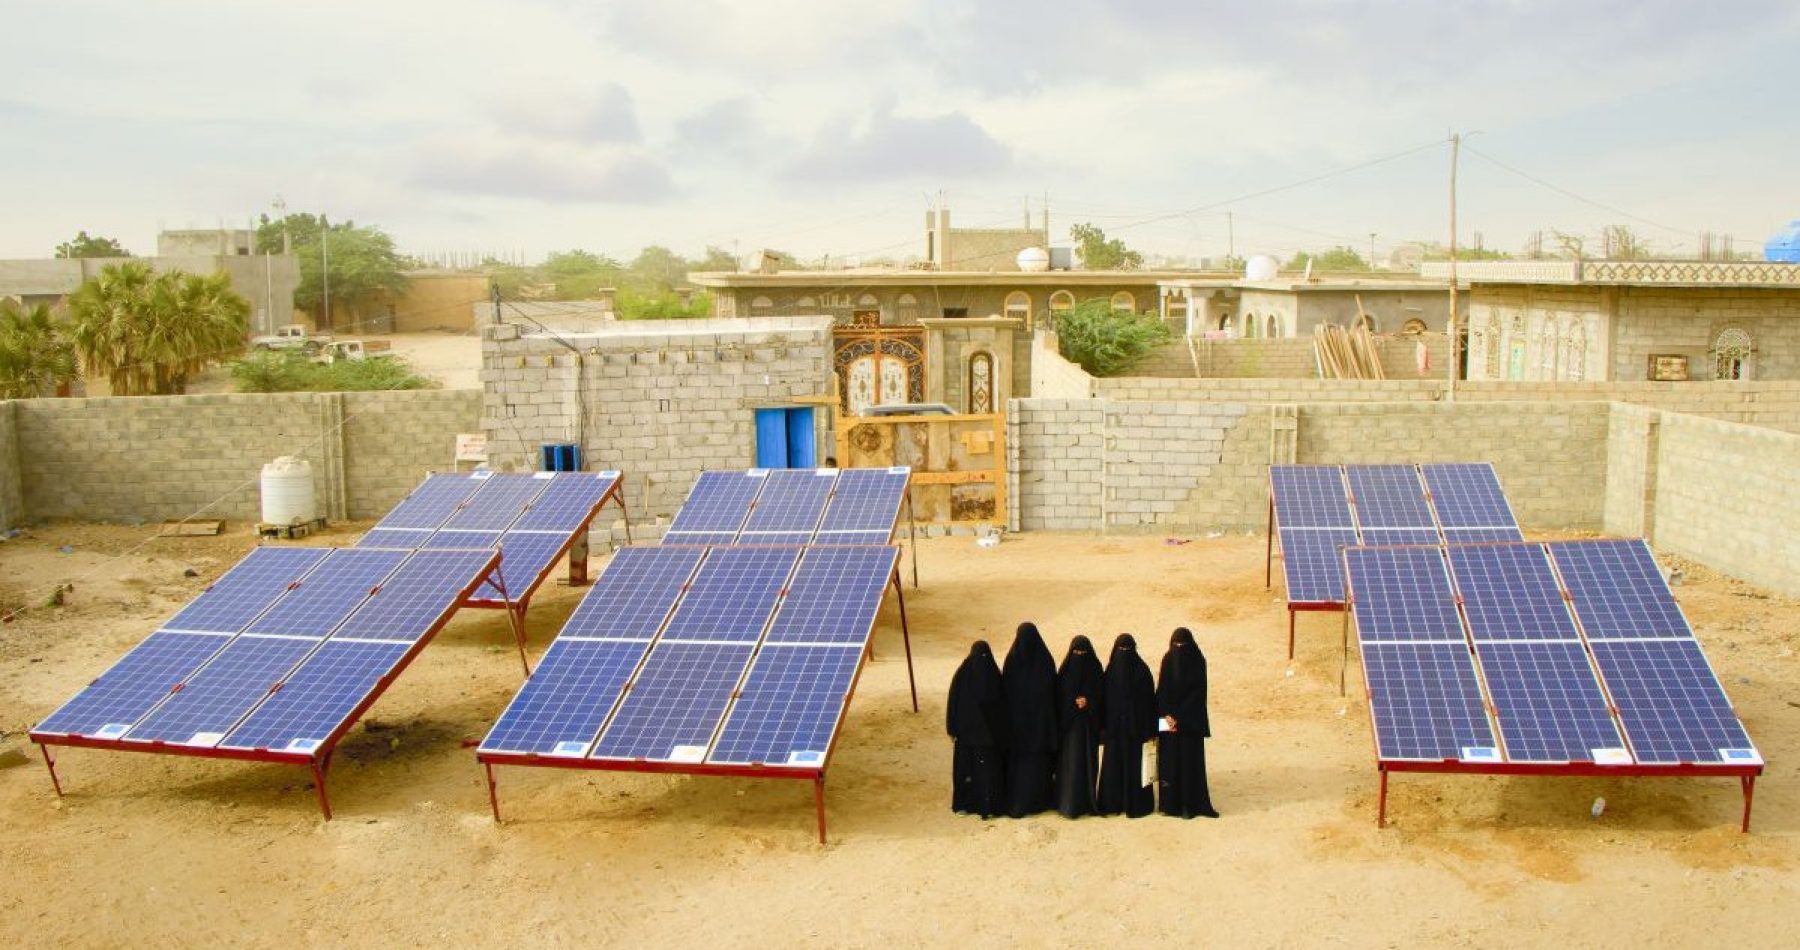 Image for 'The community respects us': how solar projects are empowering women in Yemen